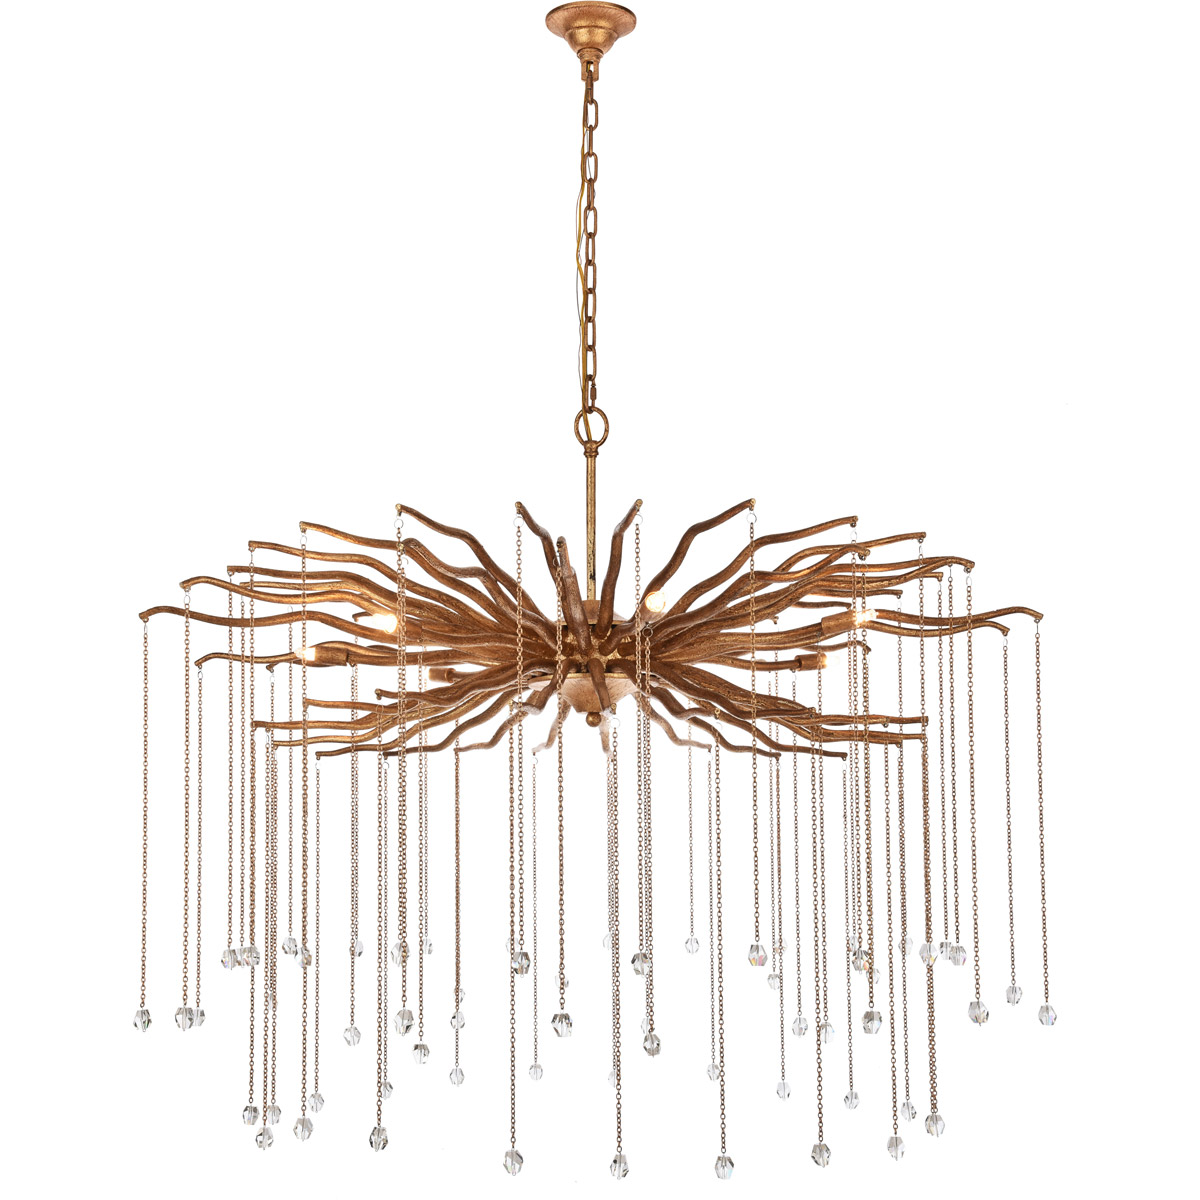 Elegant Lighting 1539g42dag Willow Chandelier Drizzled Antique Gold Parts Diagram What Make Up A